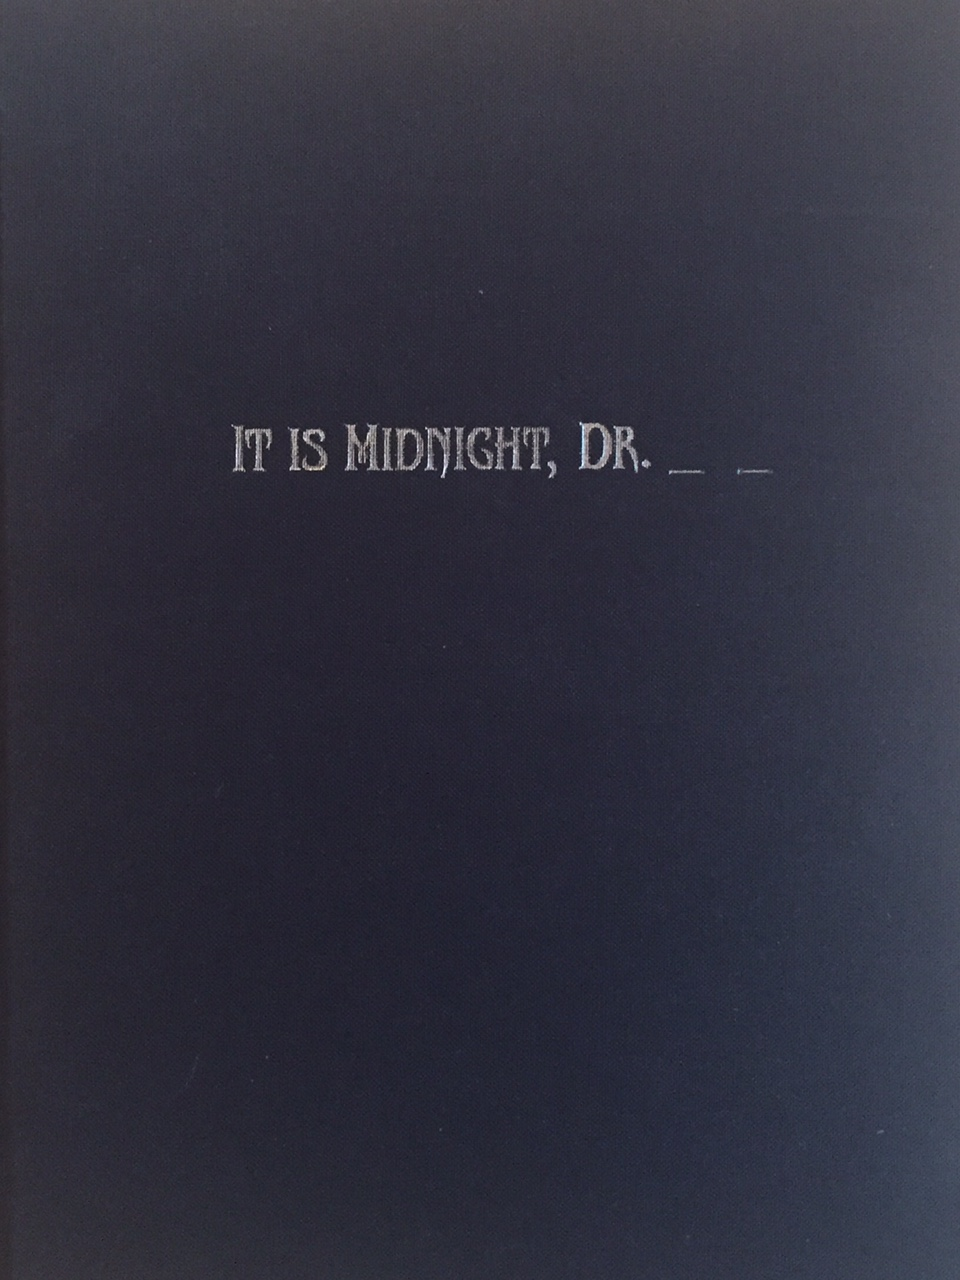 IT IS MIDNIGHT, DR.__